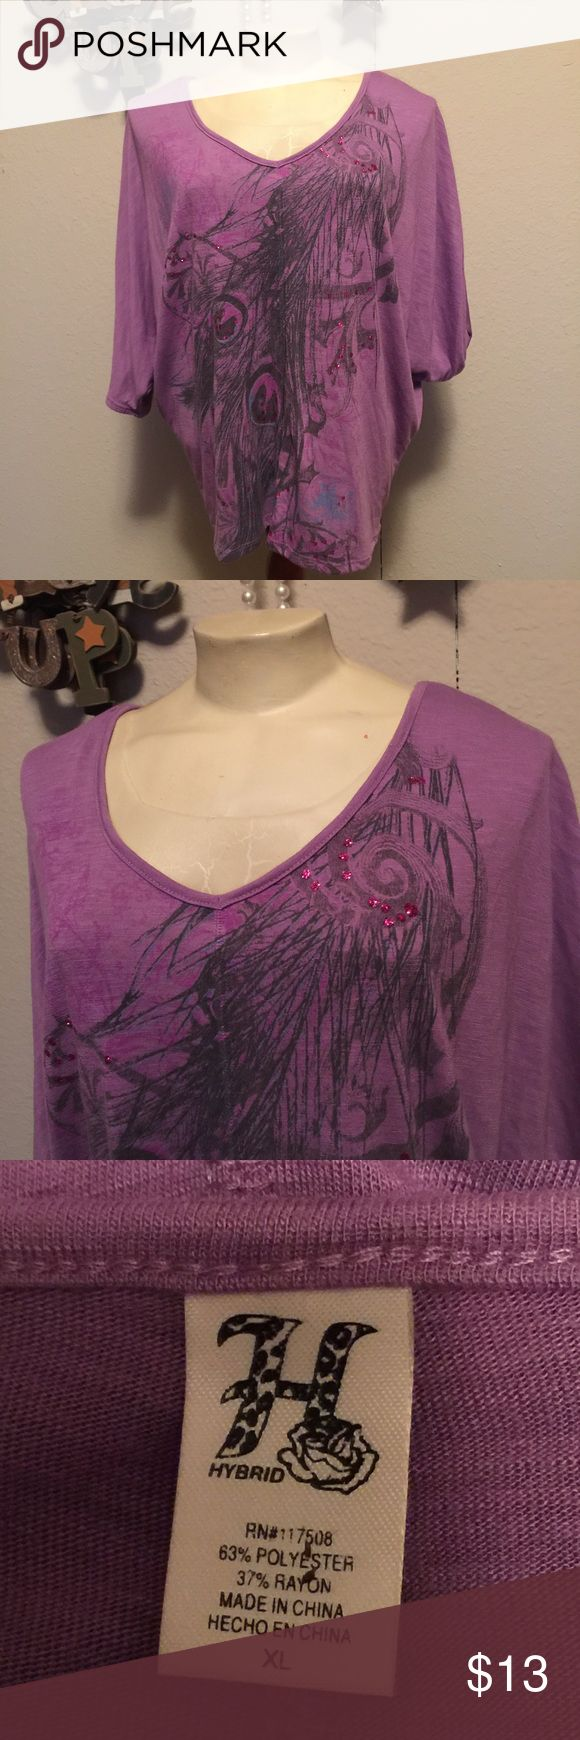 Purple dolman batwing peacock feather boho shirt Juniors size XL purple peacock feather batwing Dolman shirt.   ~ I am open to reasonable offers. ~Be sure to check out my other listings for more great items & save on shipping! ~I ship same day or next day.  ~ I do not hold items.   ~Not responsible for incorrect sizing. I go by what the tag says its up to the buyer to know their size. hybrid  Tops Blouses